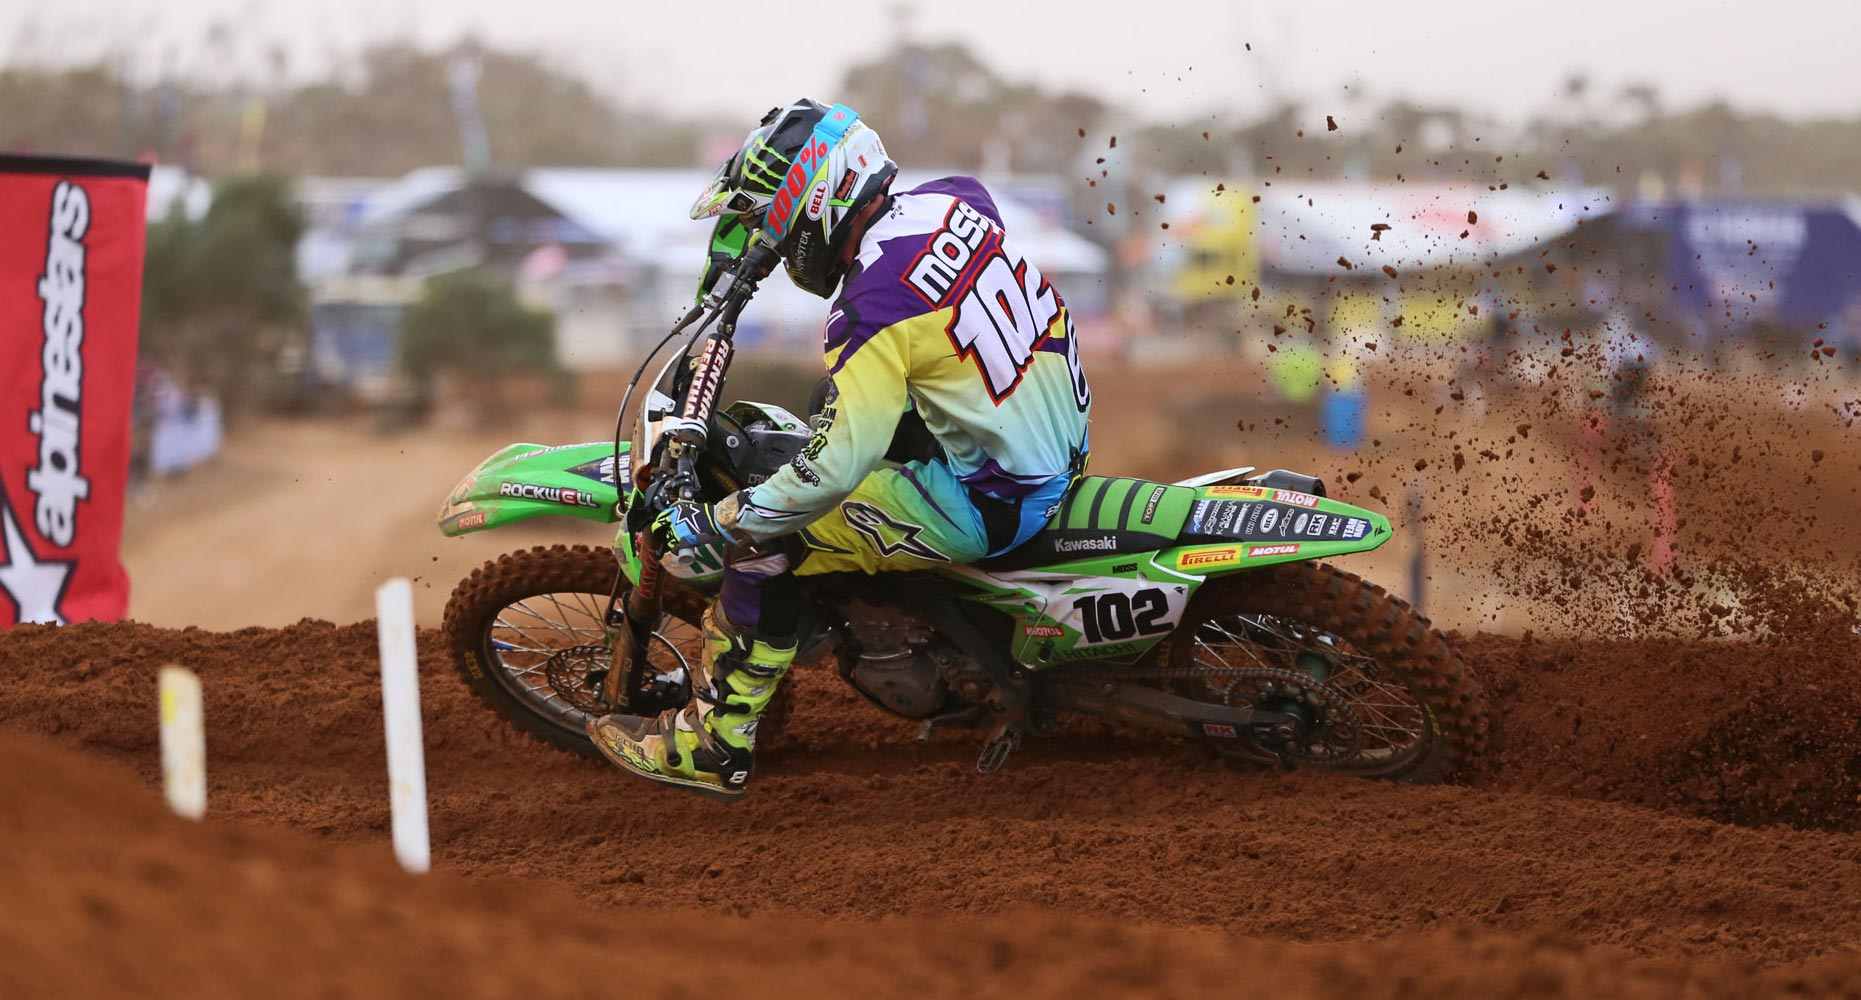 Matt Moss - Murray Bridge MX Nationals 2016